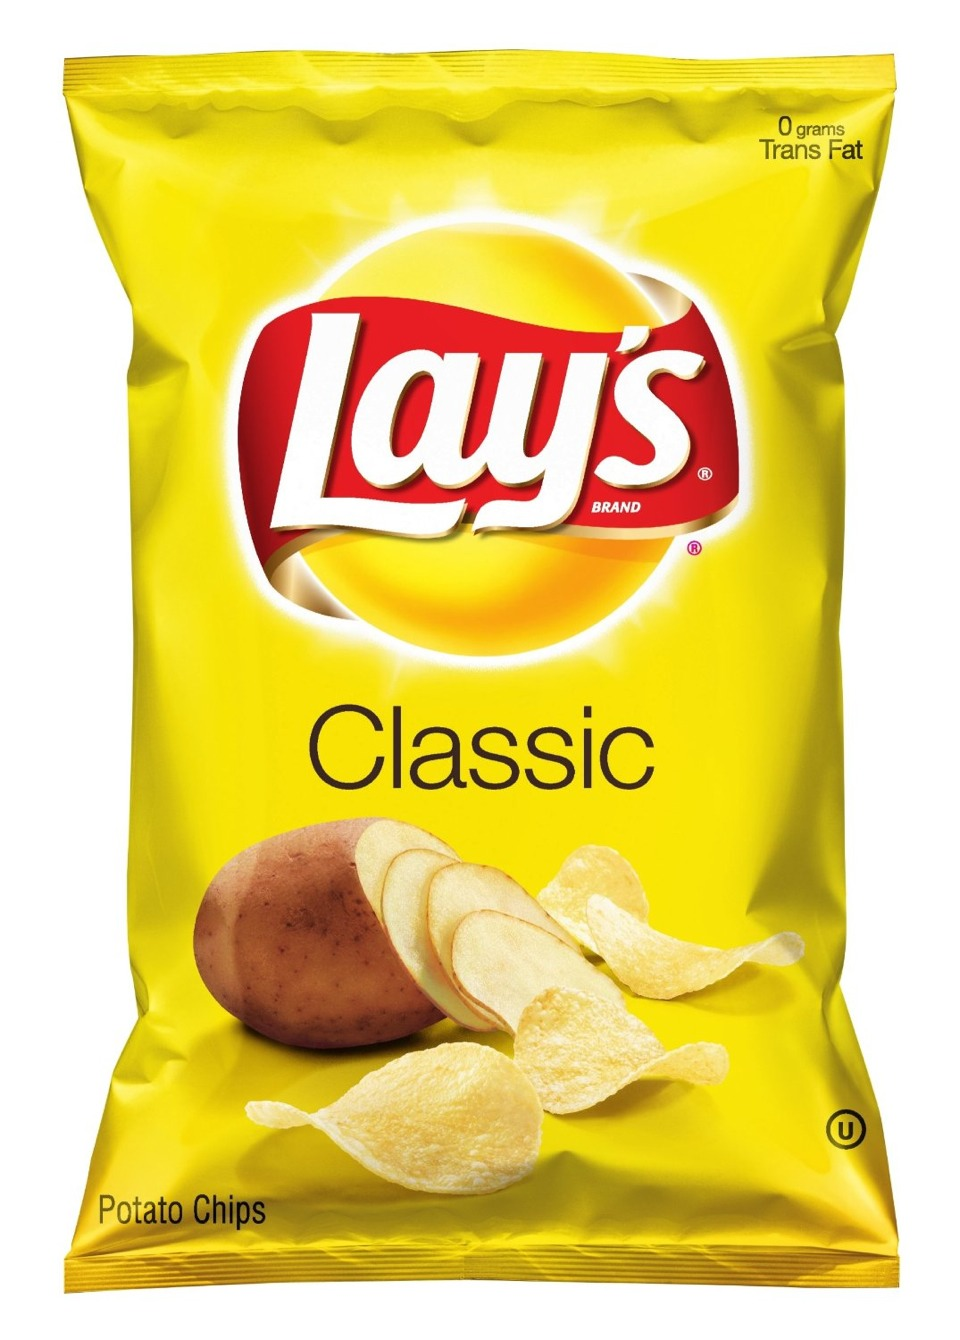 U also have to eat chips I mean come on u can have all sorts of chips